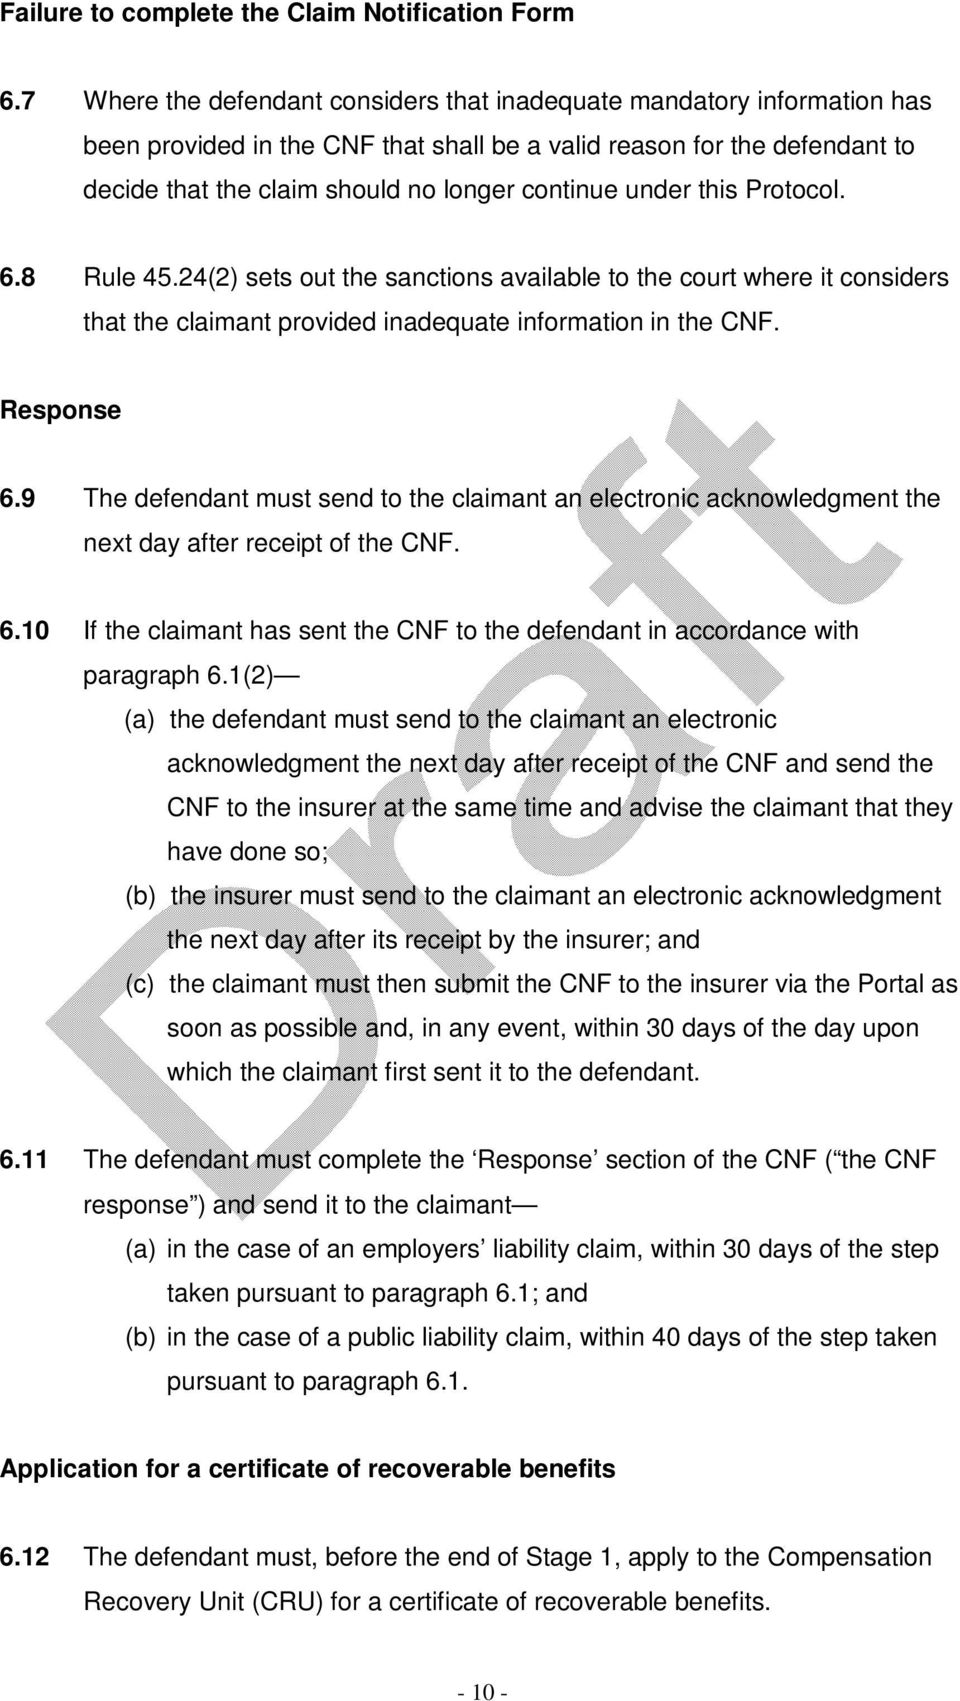 under this Protocol. 6.8 Rule 45.24(2) sets out the sanctions available to the court where it considers that the claimant provided inadequate information in the CNF. Response 6.